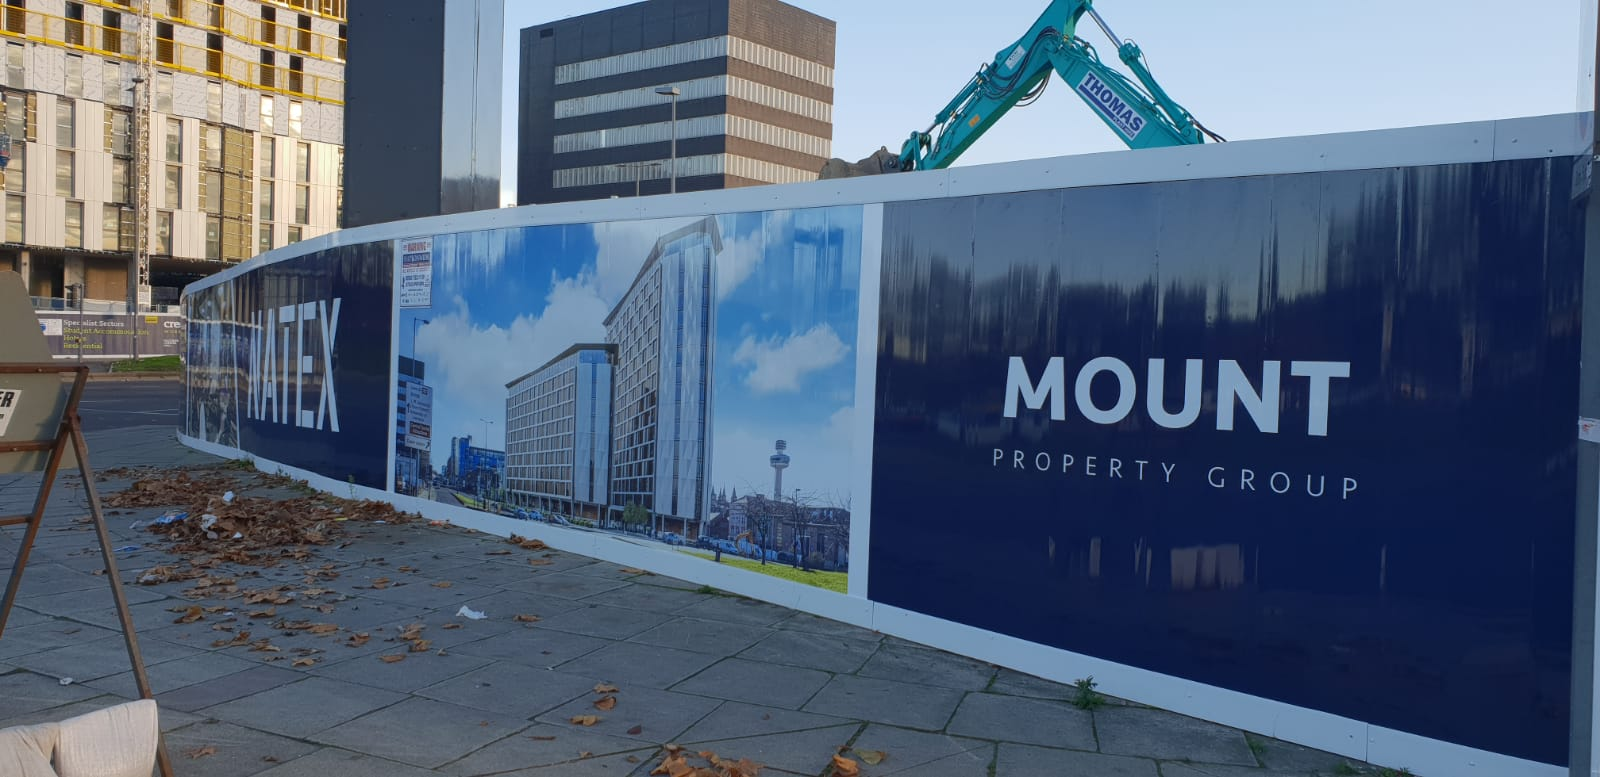 Hoarding Graphics Liverpool Mount Property Group